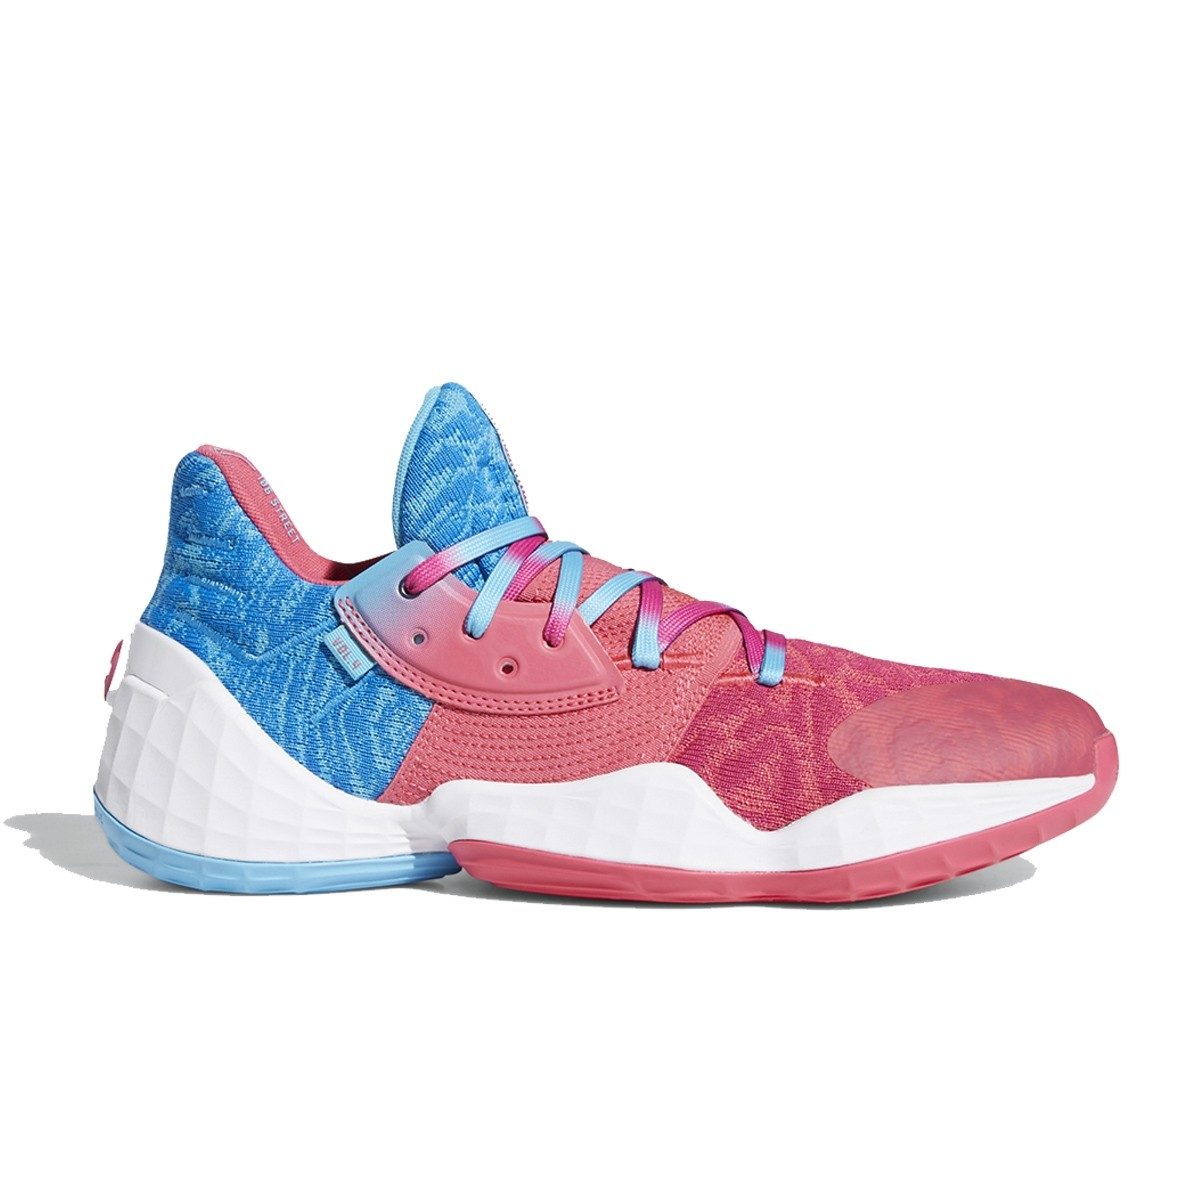 ADIDAS Harden Vol.4 'Candy Paint'